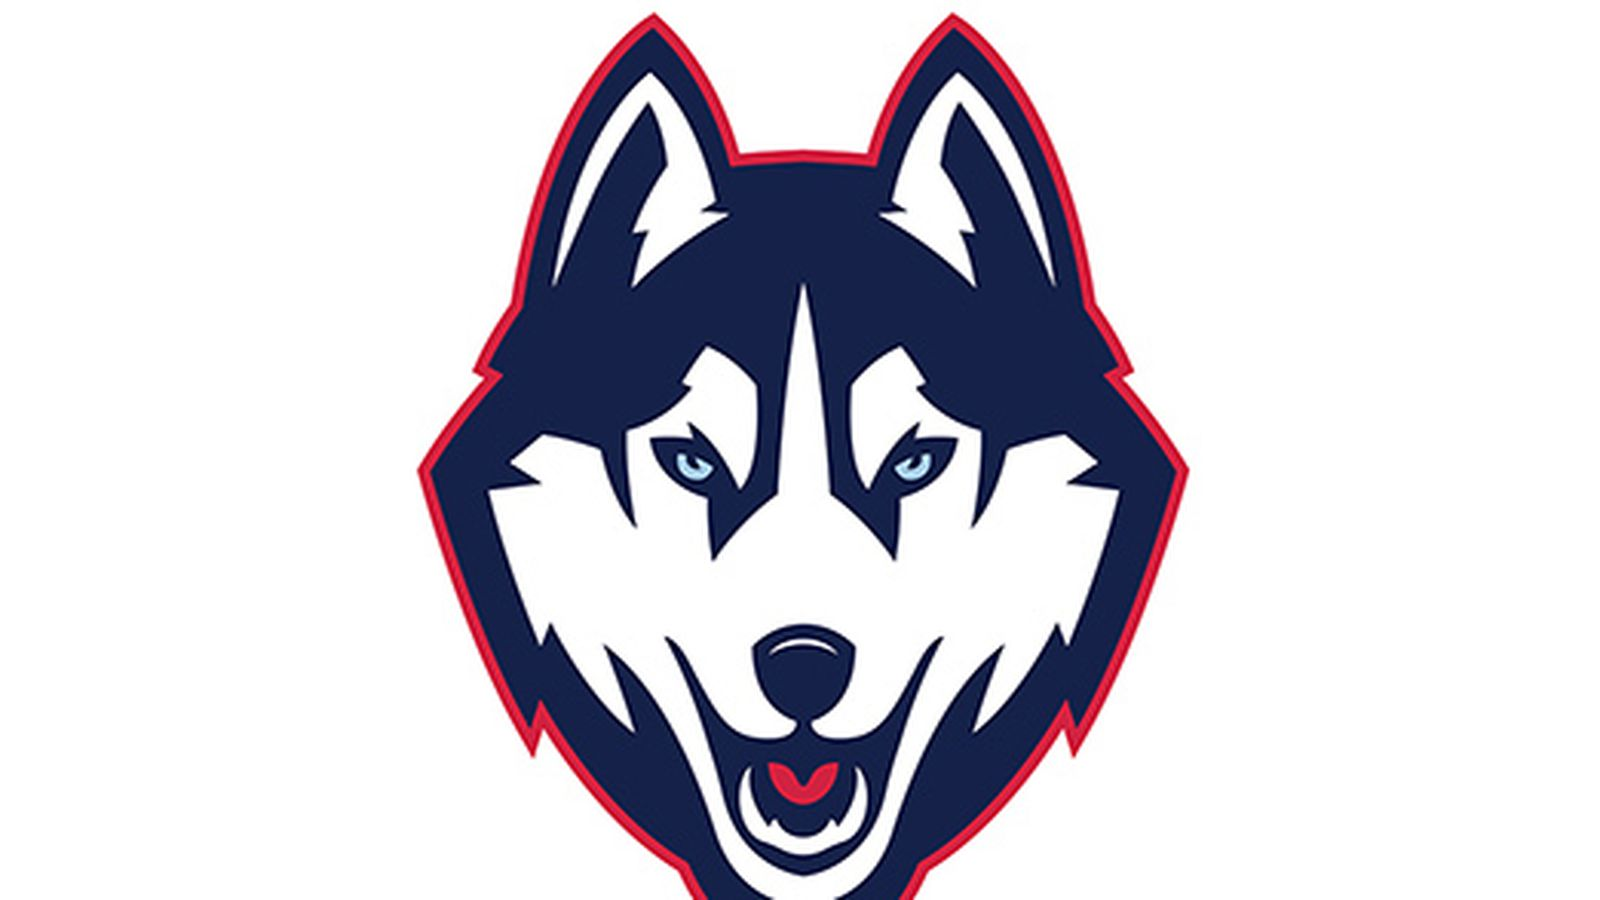 Uconn Basketball Logo Png It's official, this is...